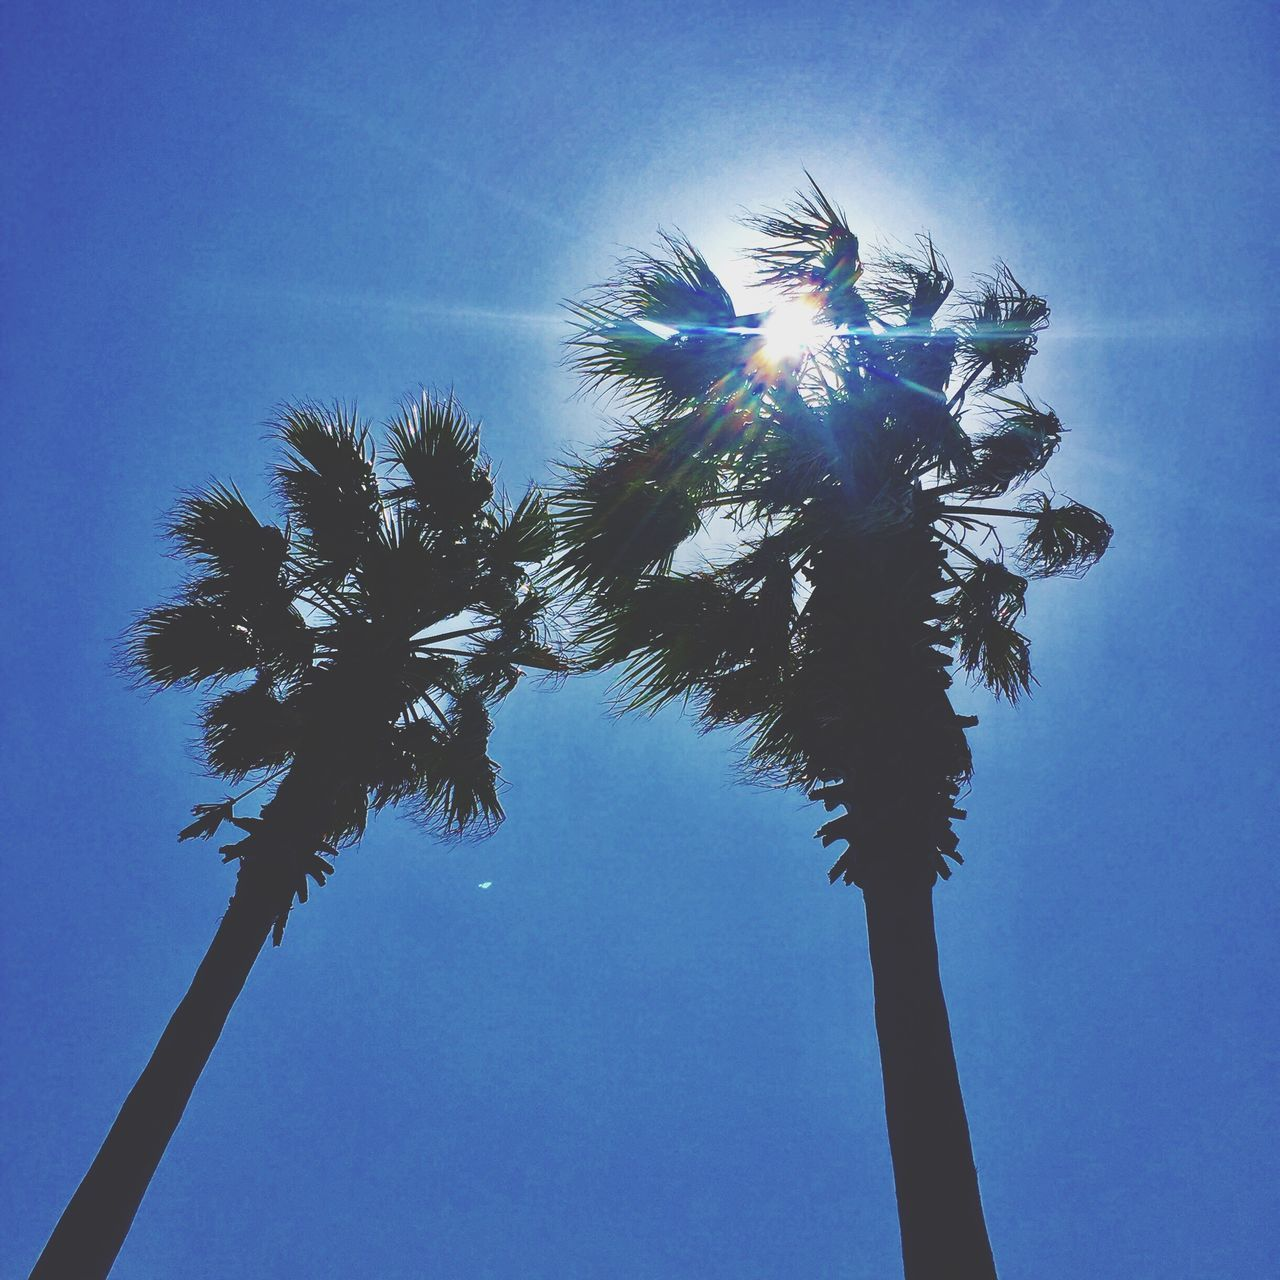 palm tree, tree, low angle view, tree trunk, blue, sky, growth, nature, day, clear sky, no people, outdoors, beauty in nature